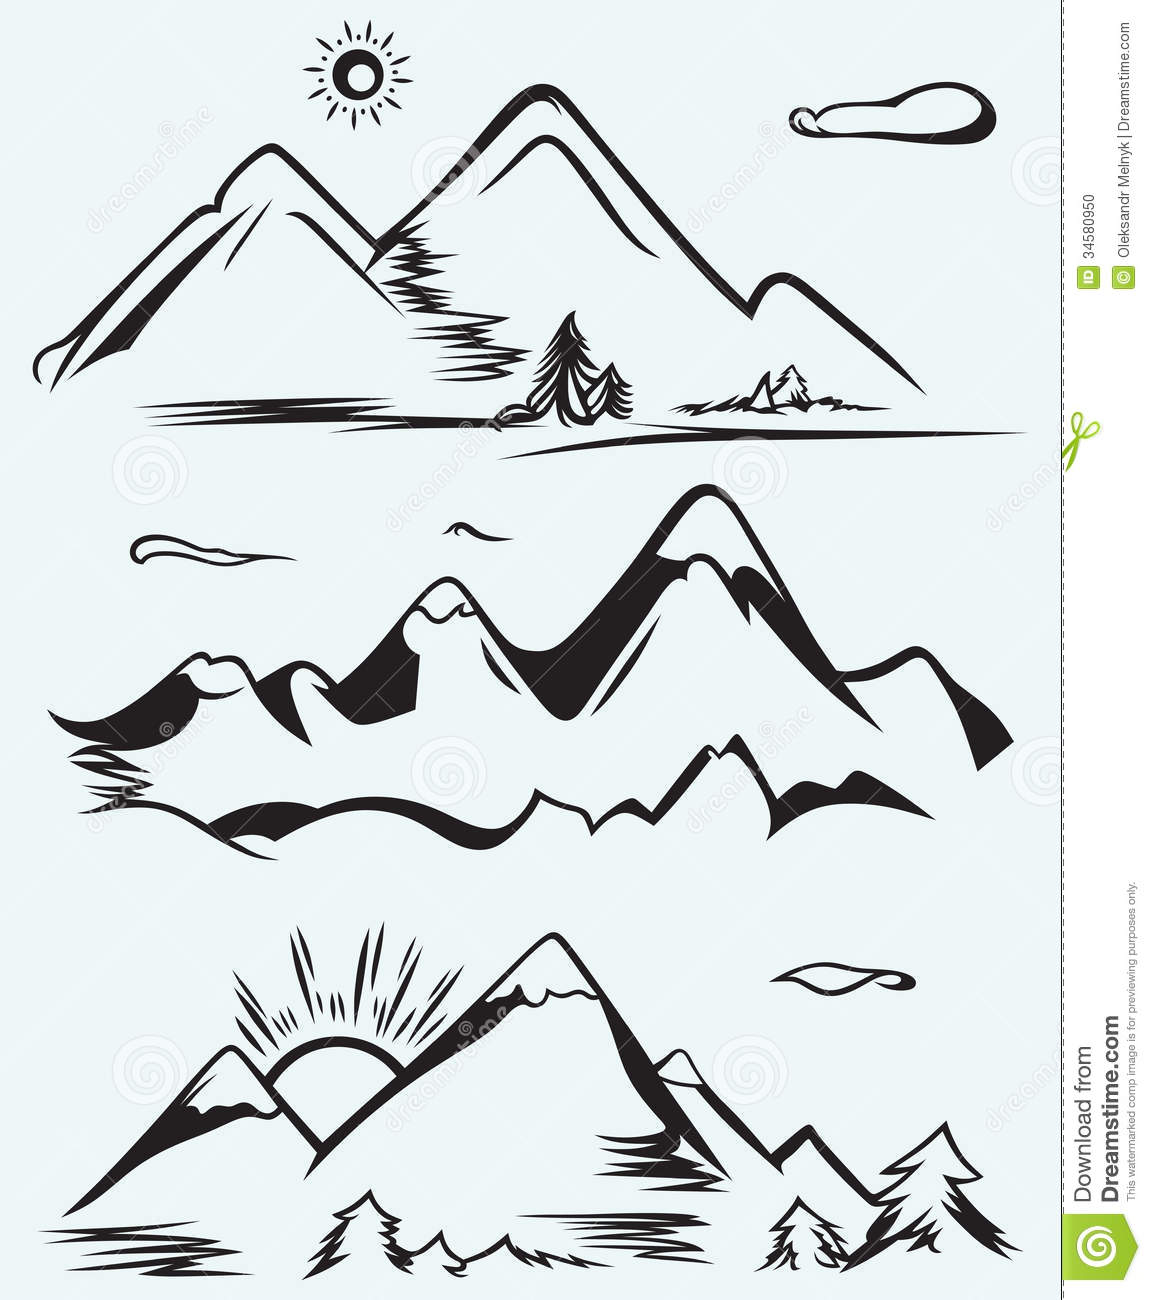 range clipart mountain range isolated blue. mountain peak clipart black and  white hidef mountain